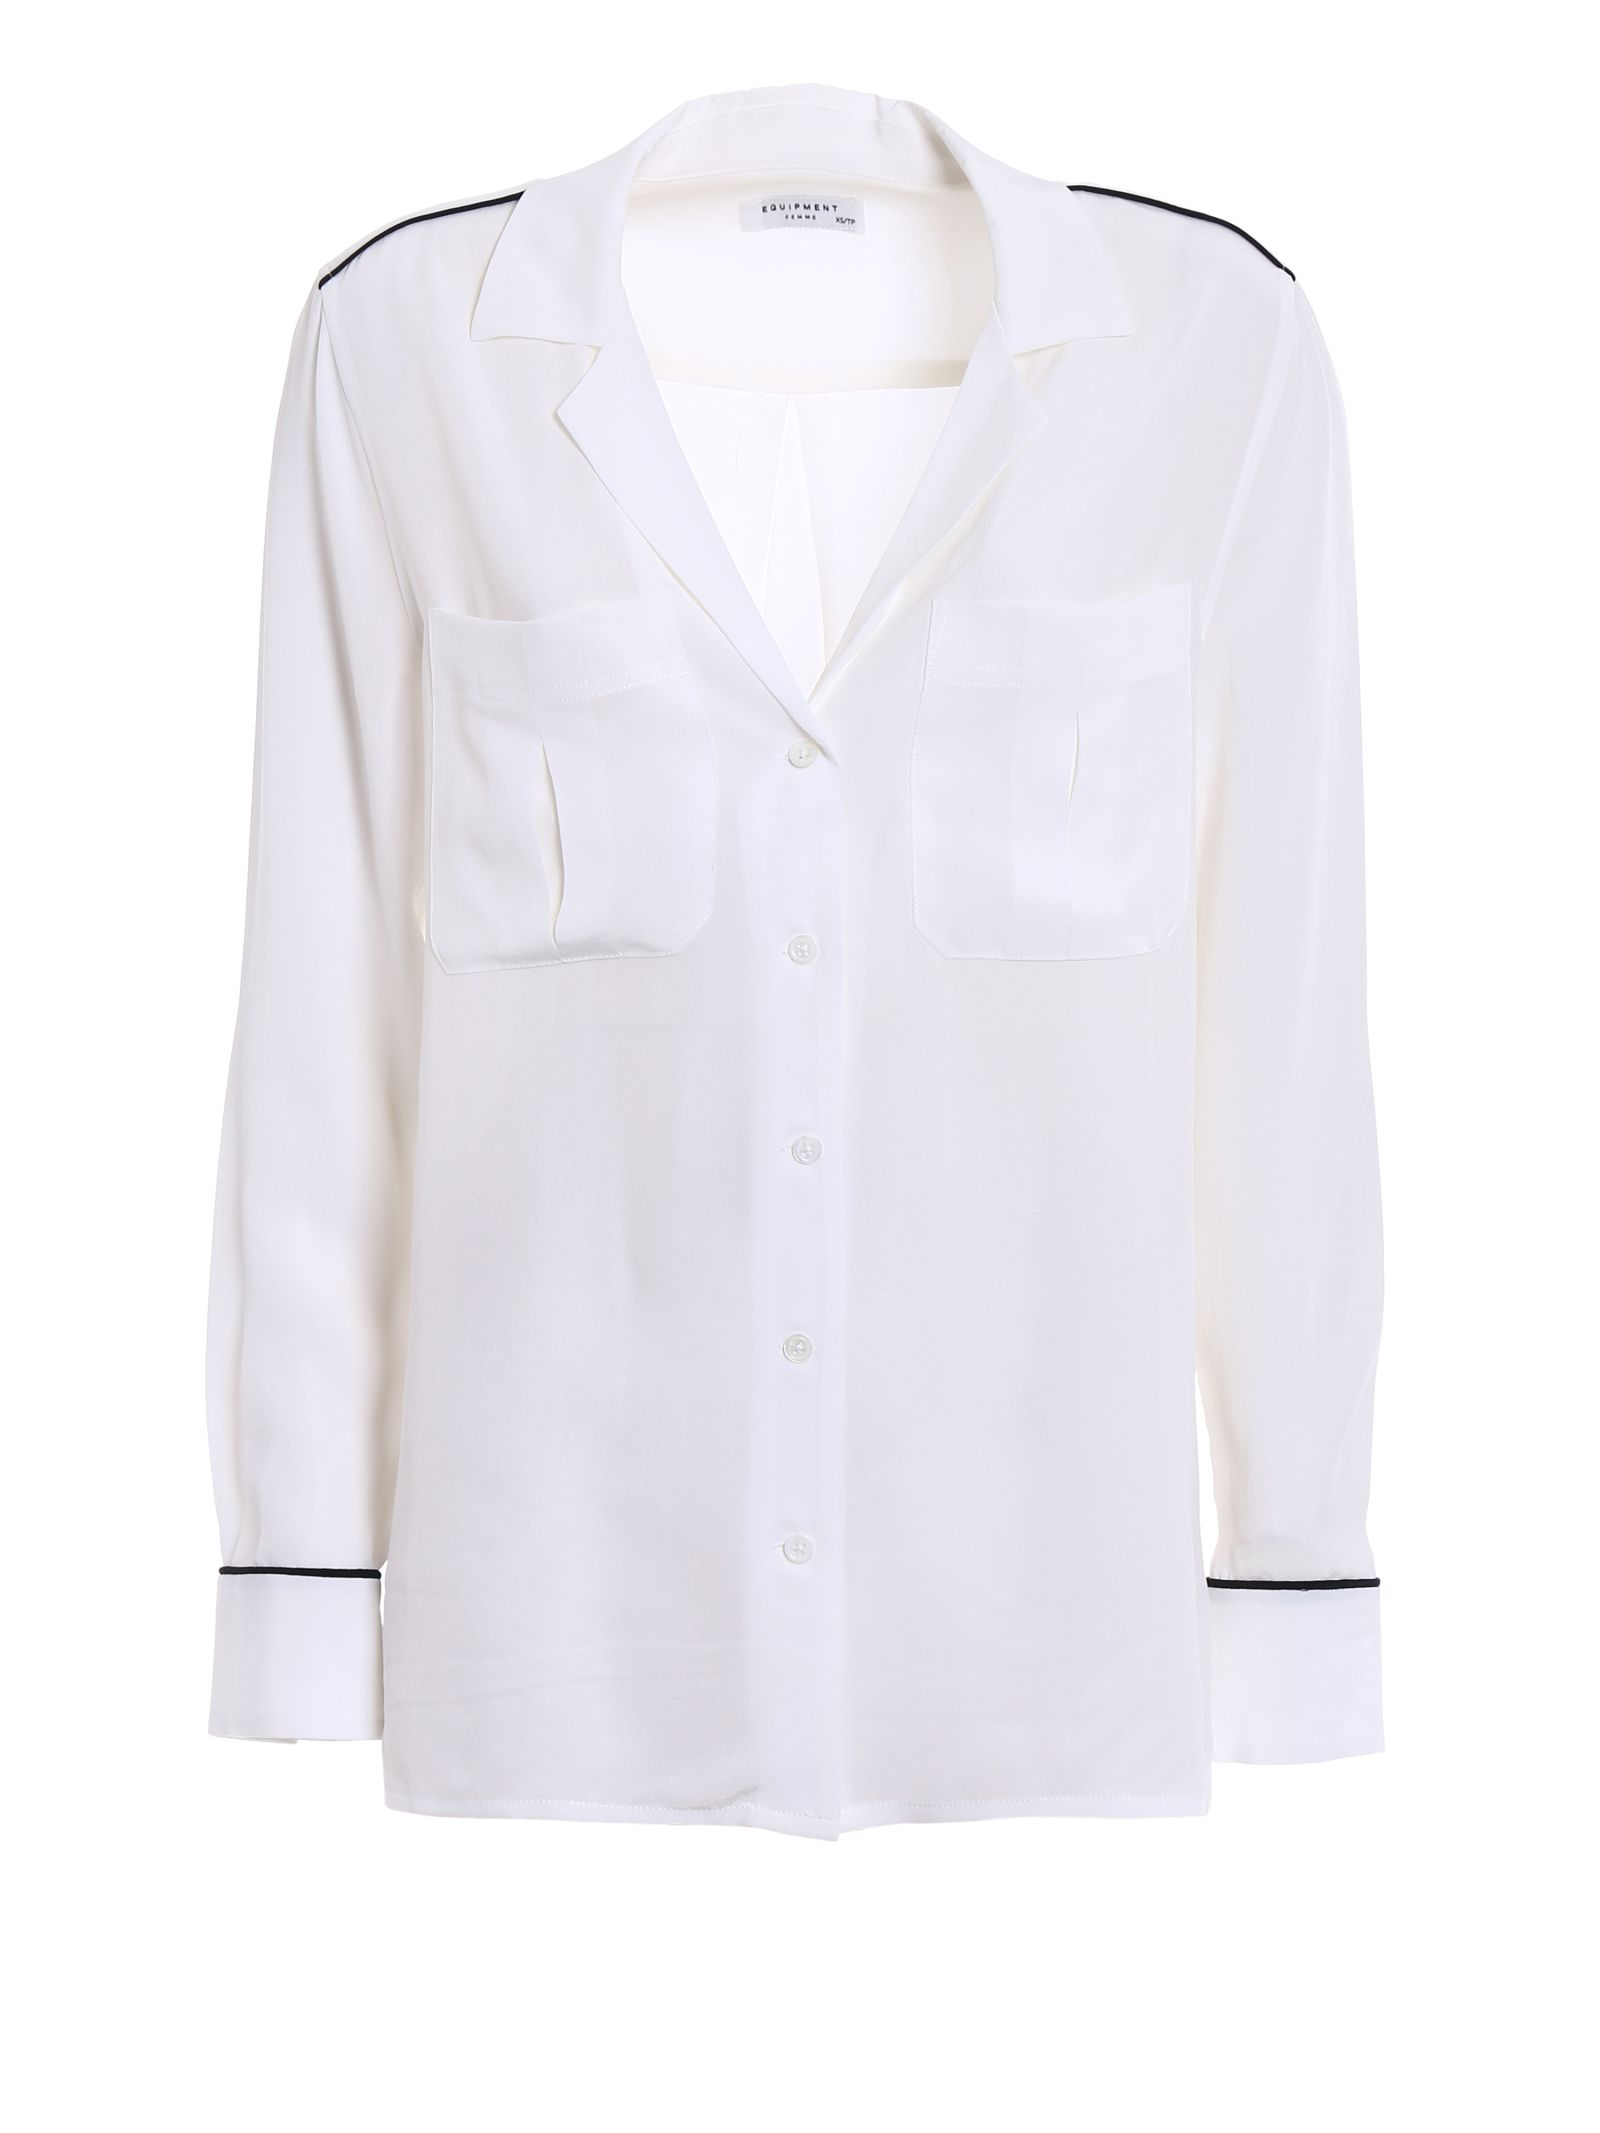 Equipment Sonny Silk Pajama Shirt - White ... 757d2a3fa